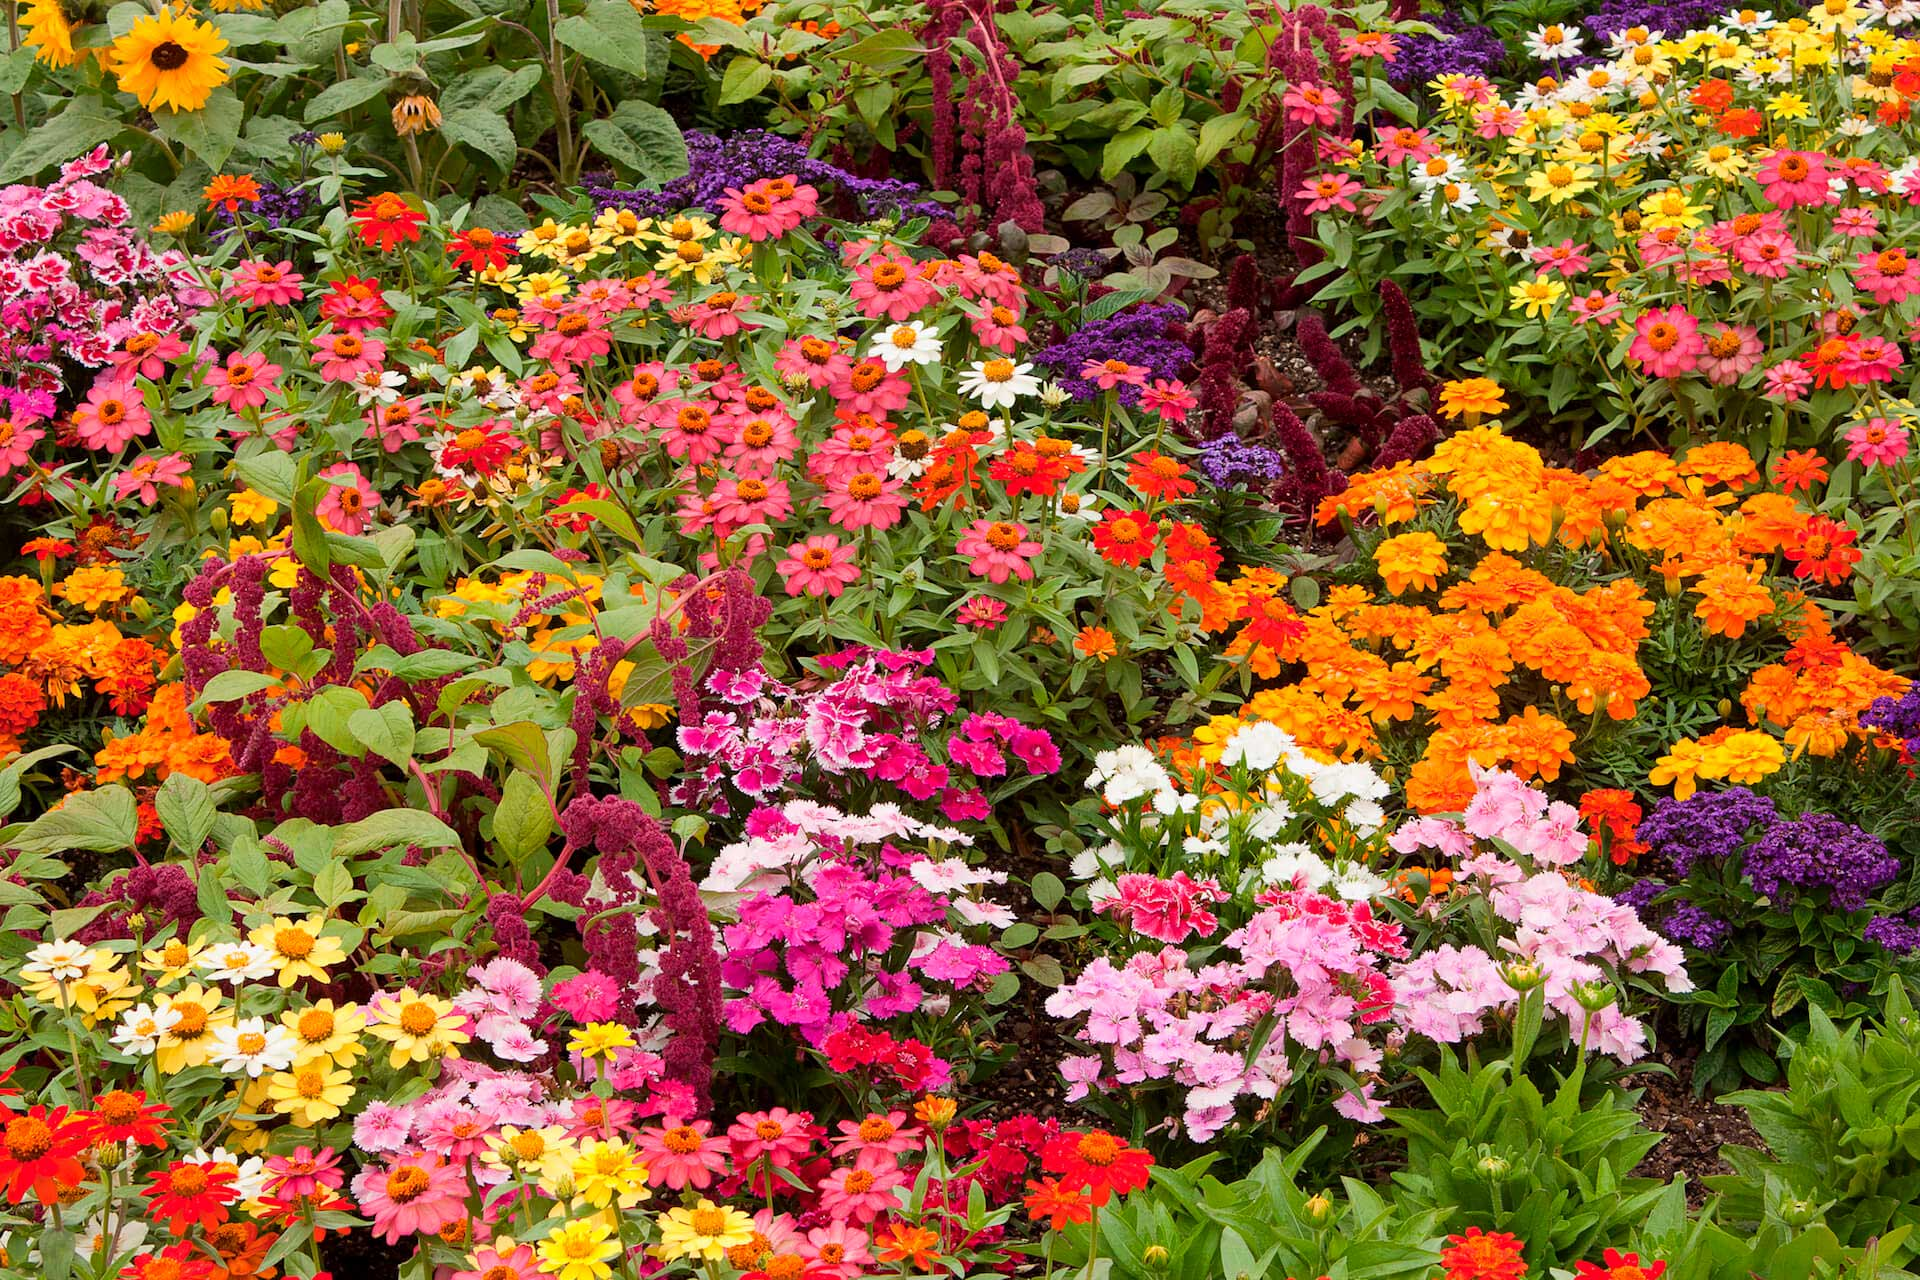 A variety of vibrantly colored flowers in one garden bed.